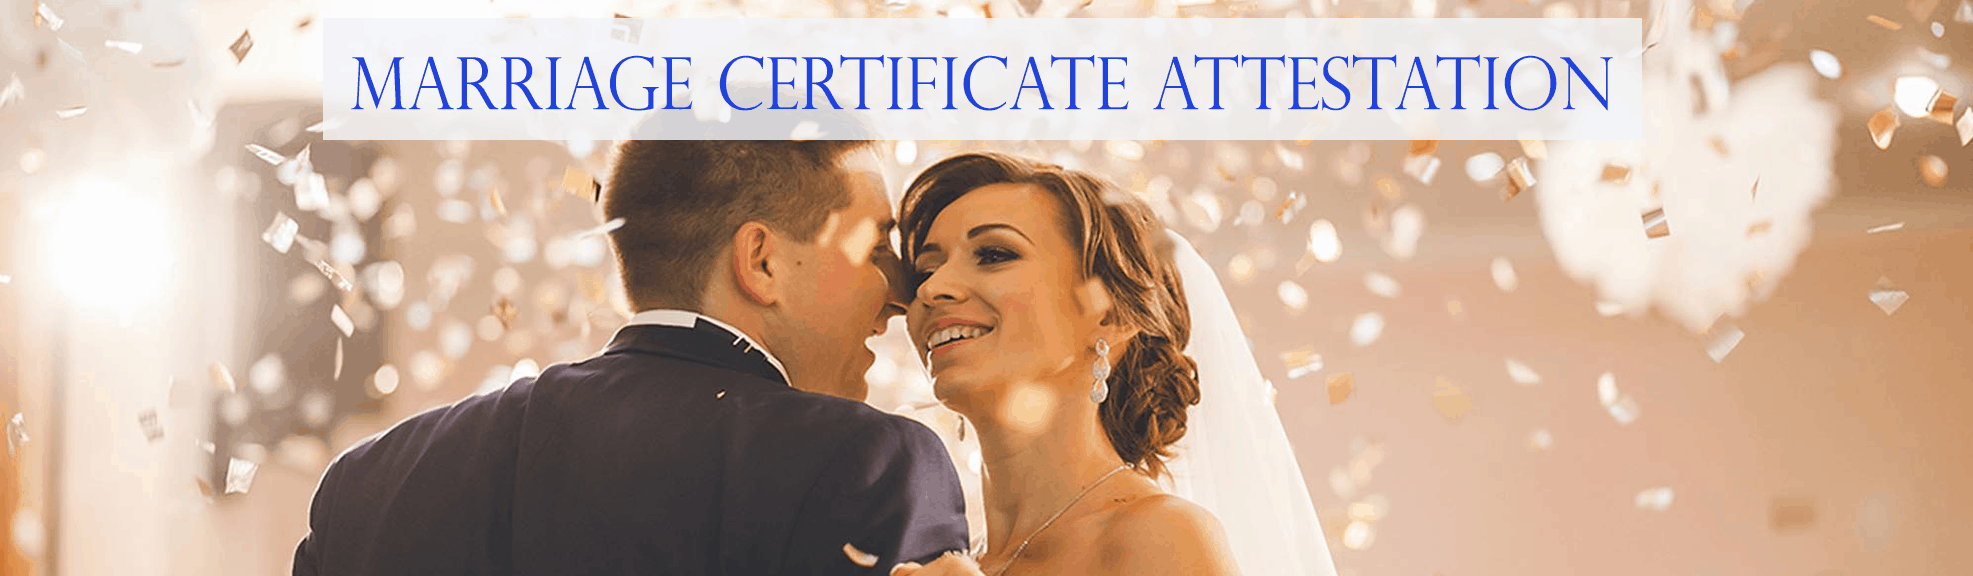 Marriage Certificate Attestation Services in Dubai